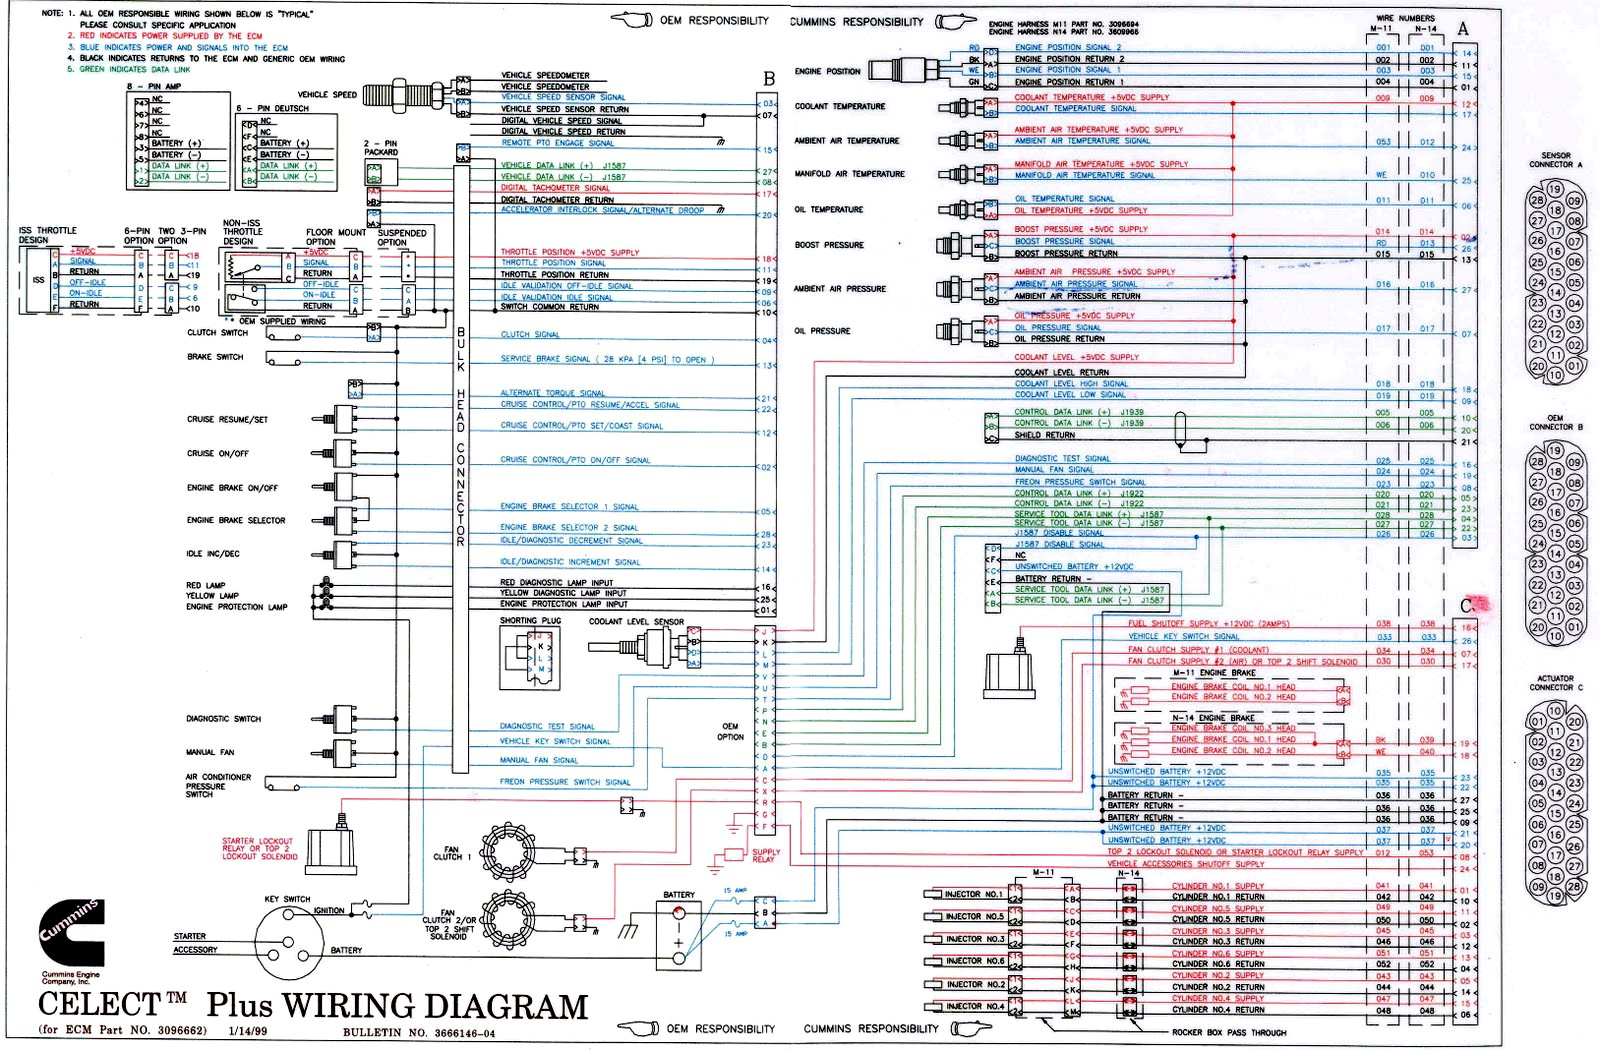 caterpillar 70 pin ecm wiring diagram caterpillar cat 70 pin ecm wiring diagram solidfonts on caterpillar 70 pin ecm wiring diagram